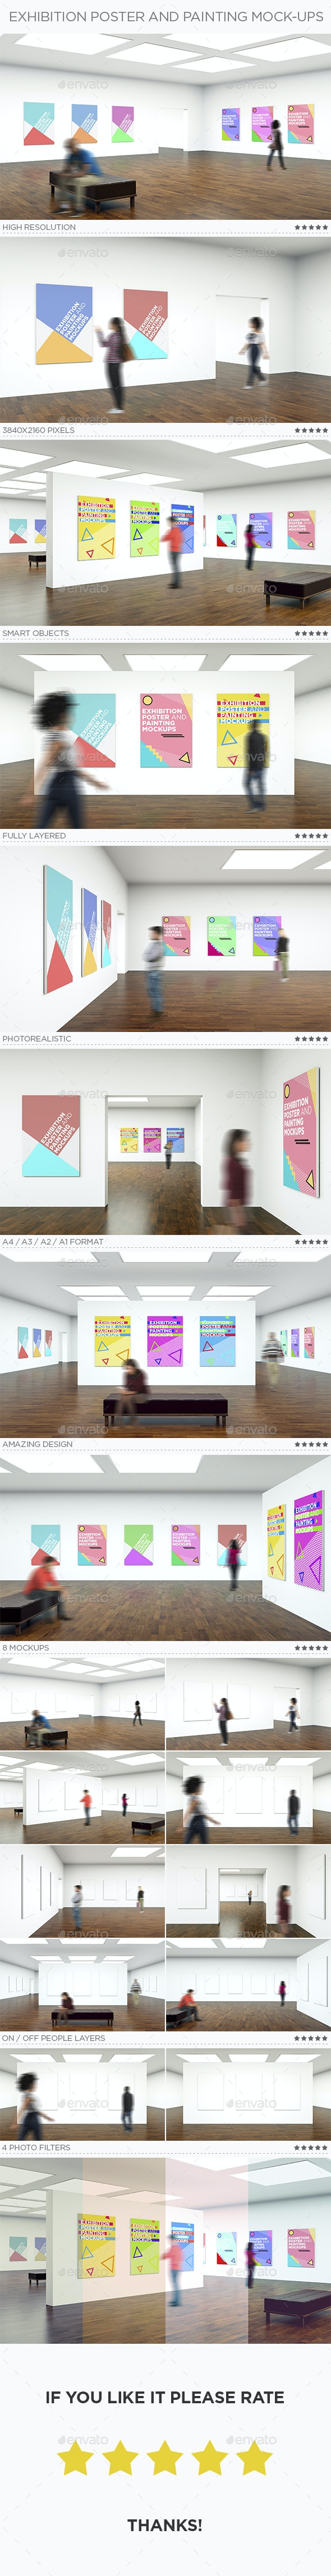 Exhibition Poster and Painting Mock-Ups - Posters Print